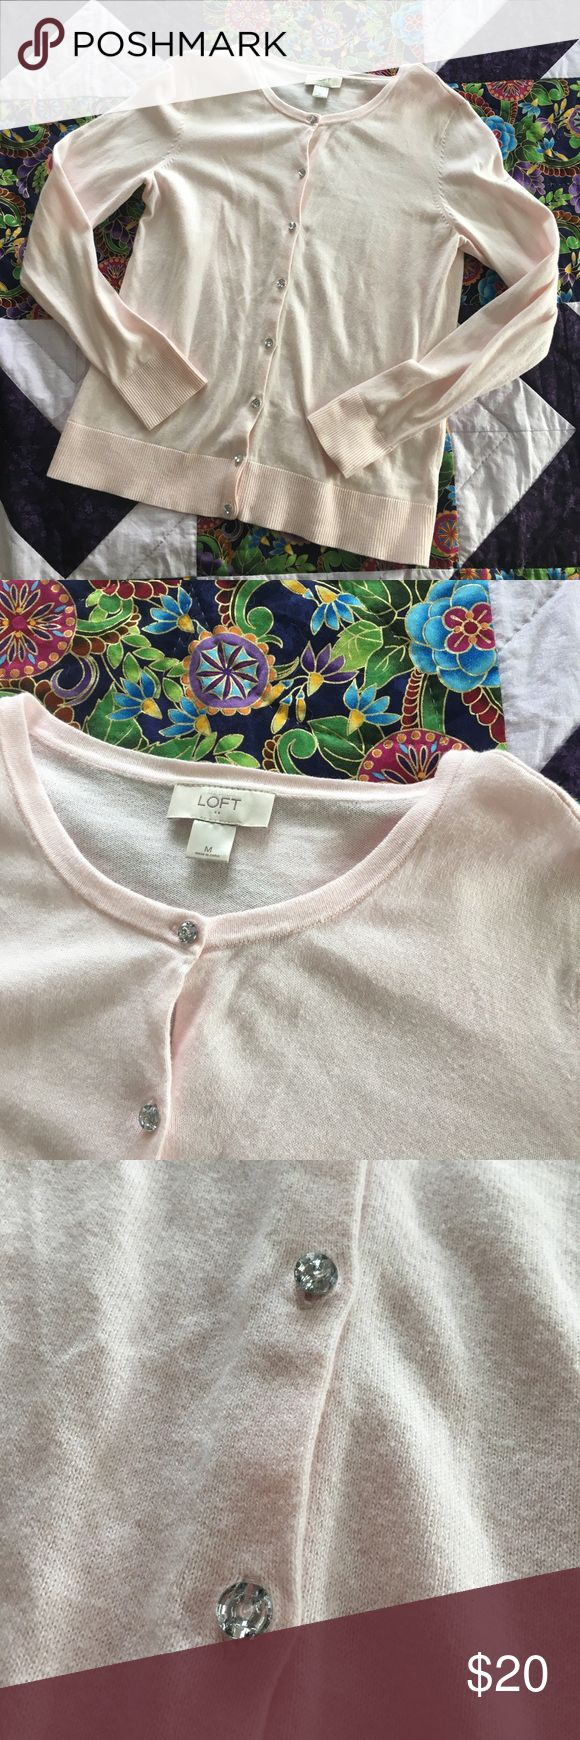 LOFT Cardigan In very good condition, no flaws. Buttons have jewels on them. From the factory store. LOFT Sweaters Cardigans